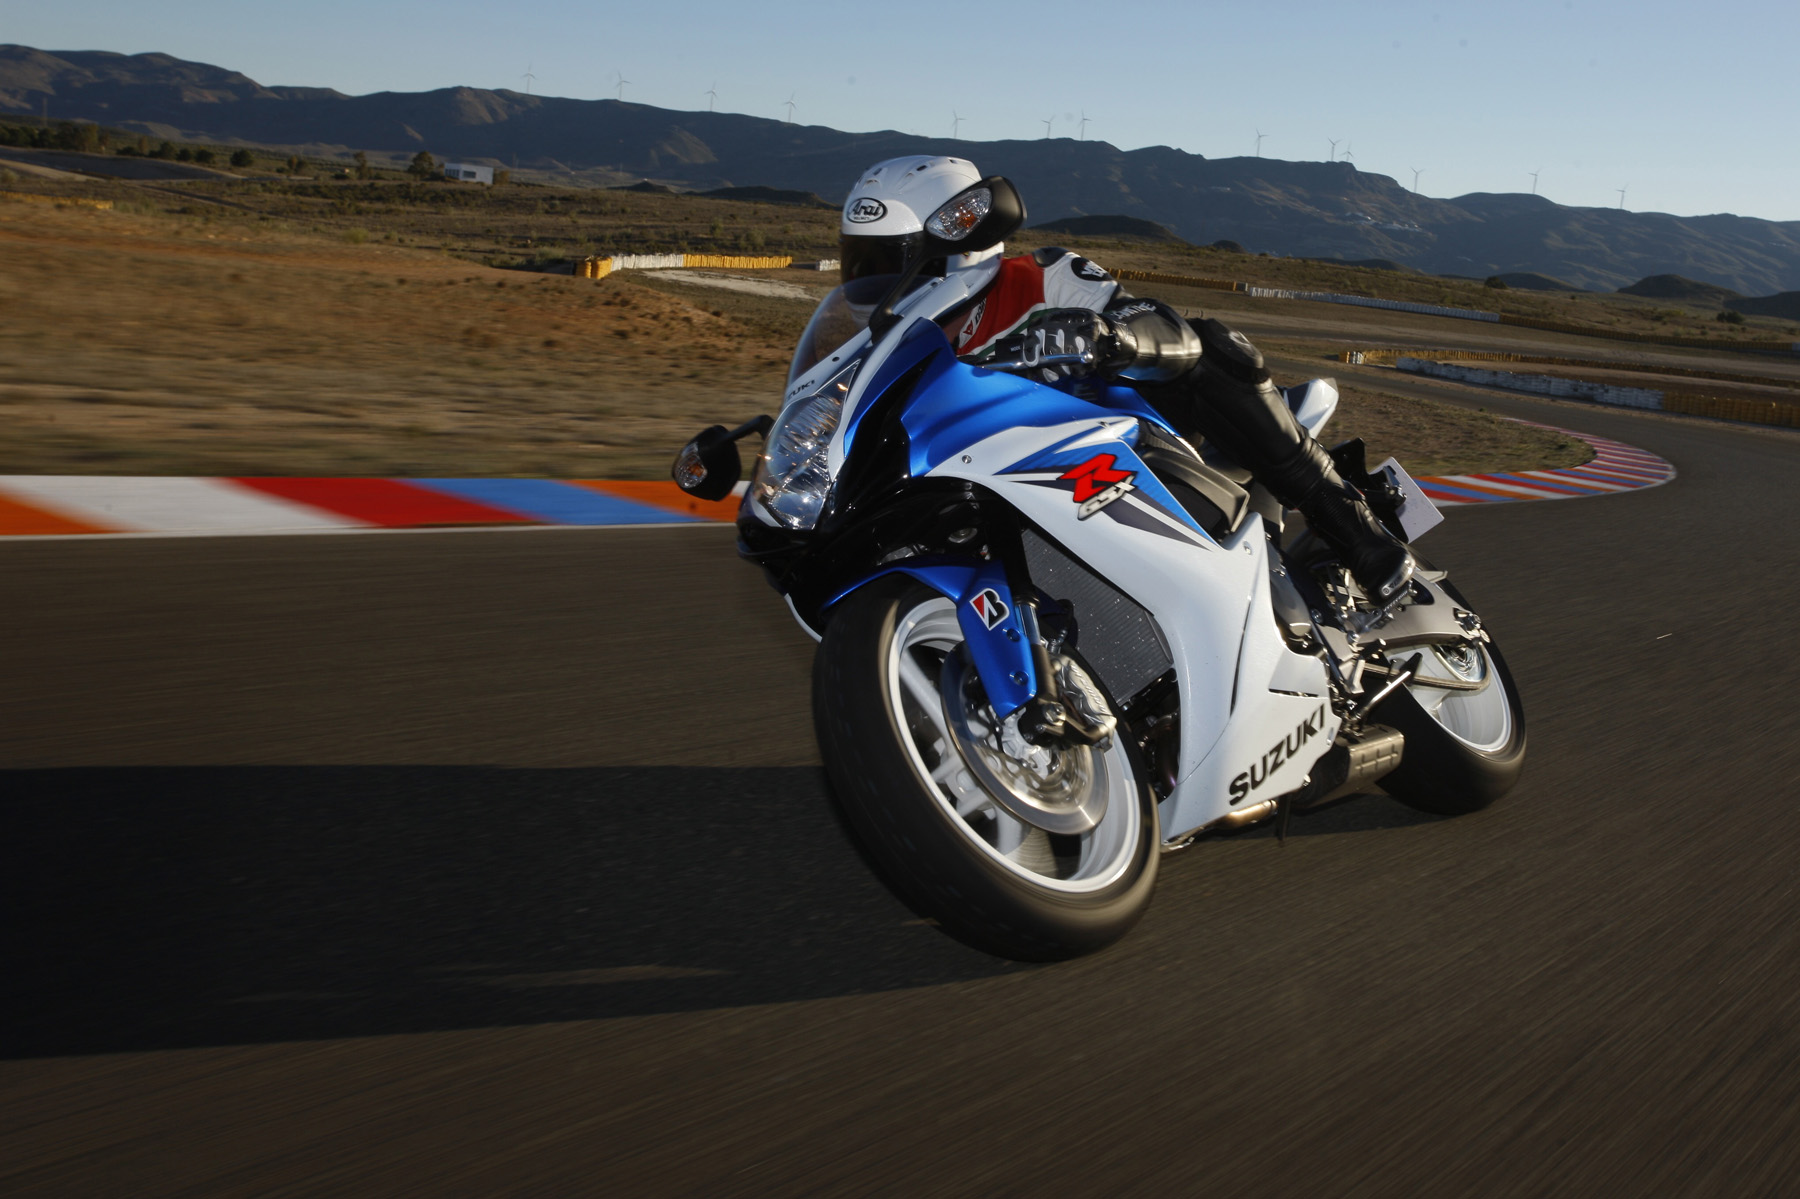 First Ride: 2011 Suzuki GSX-R600